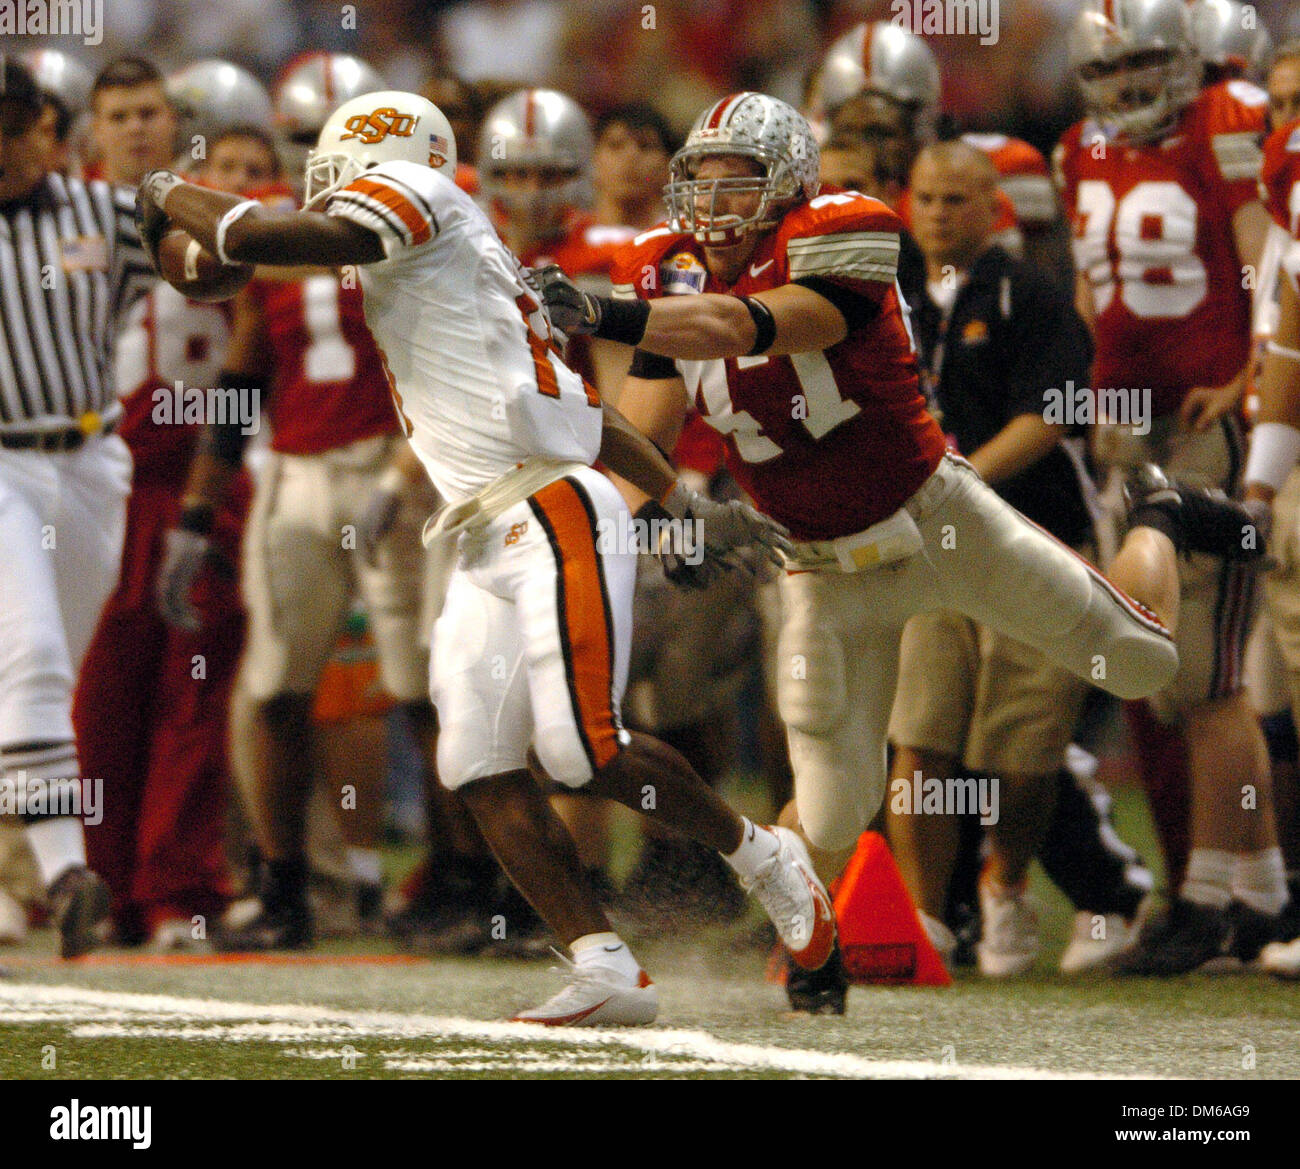 Dec 29, 2004; San Antonio, TX, USA; NCAA Football - Oklahoma State's Prentiss Elliott (11) is brought down by Ohio State's A.J. Hawk during the 2004 MasterCard Alamo Bowl at the Alamo dome in San Antonio. - Stock Image